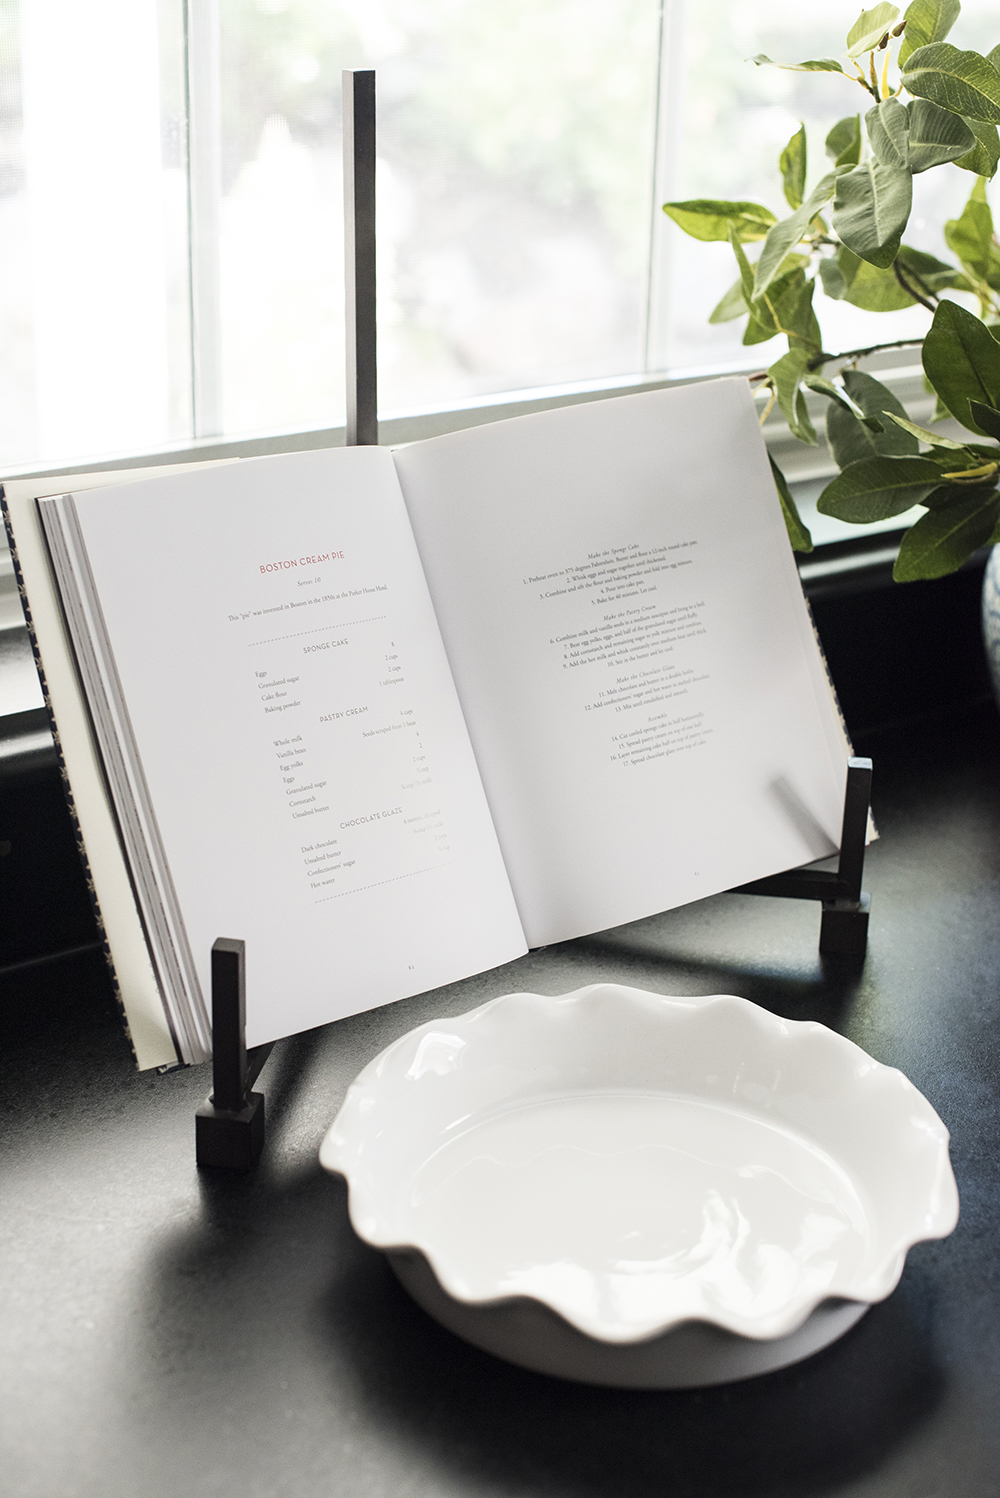 photo relating to Printable Glassware called My Dishes, Glware, Kitchenware - Place for Tuesday